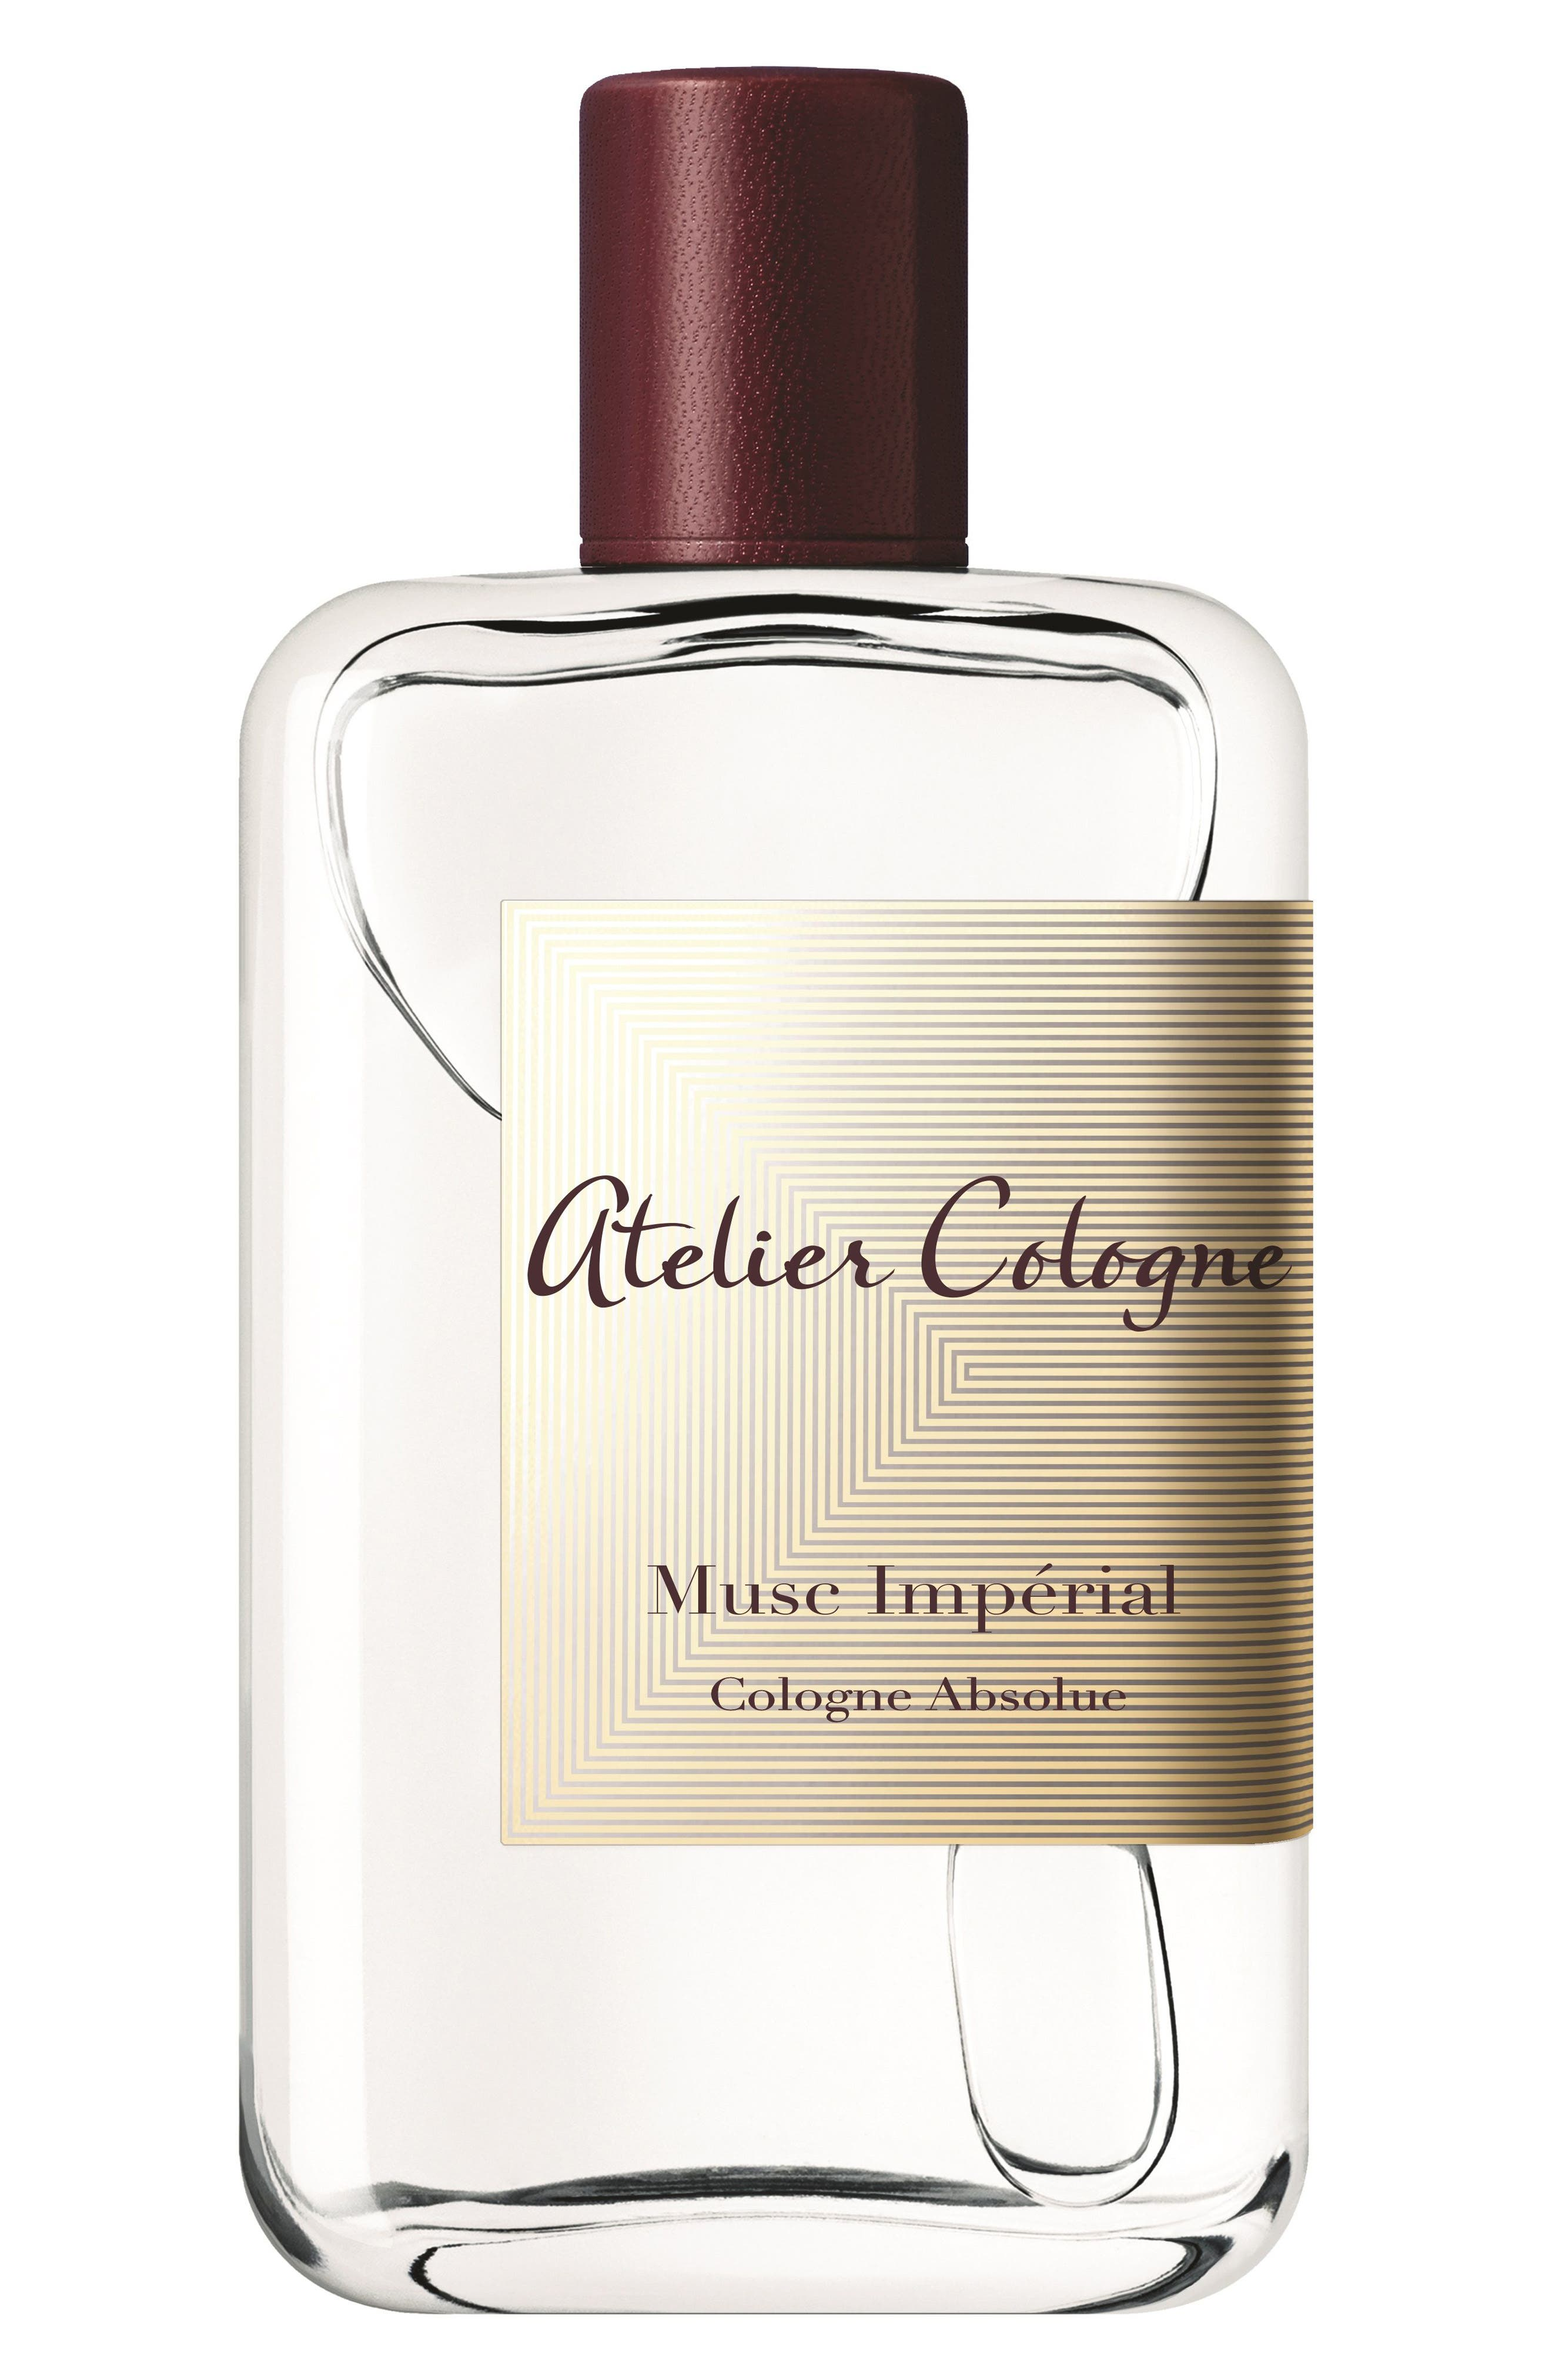 Alternate Image 1 Selected - Atelier Cologne Musc Impérial Cologen Absolue (Nordstrom Exclusive)